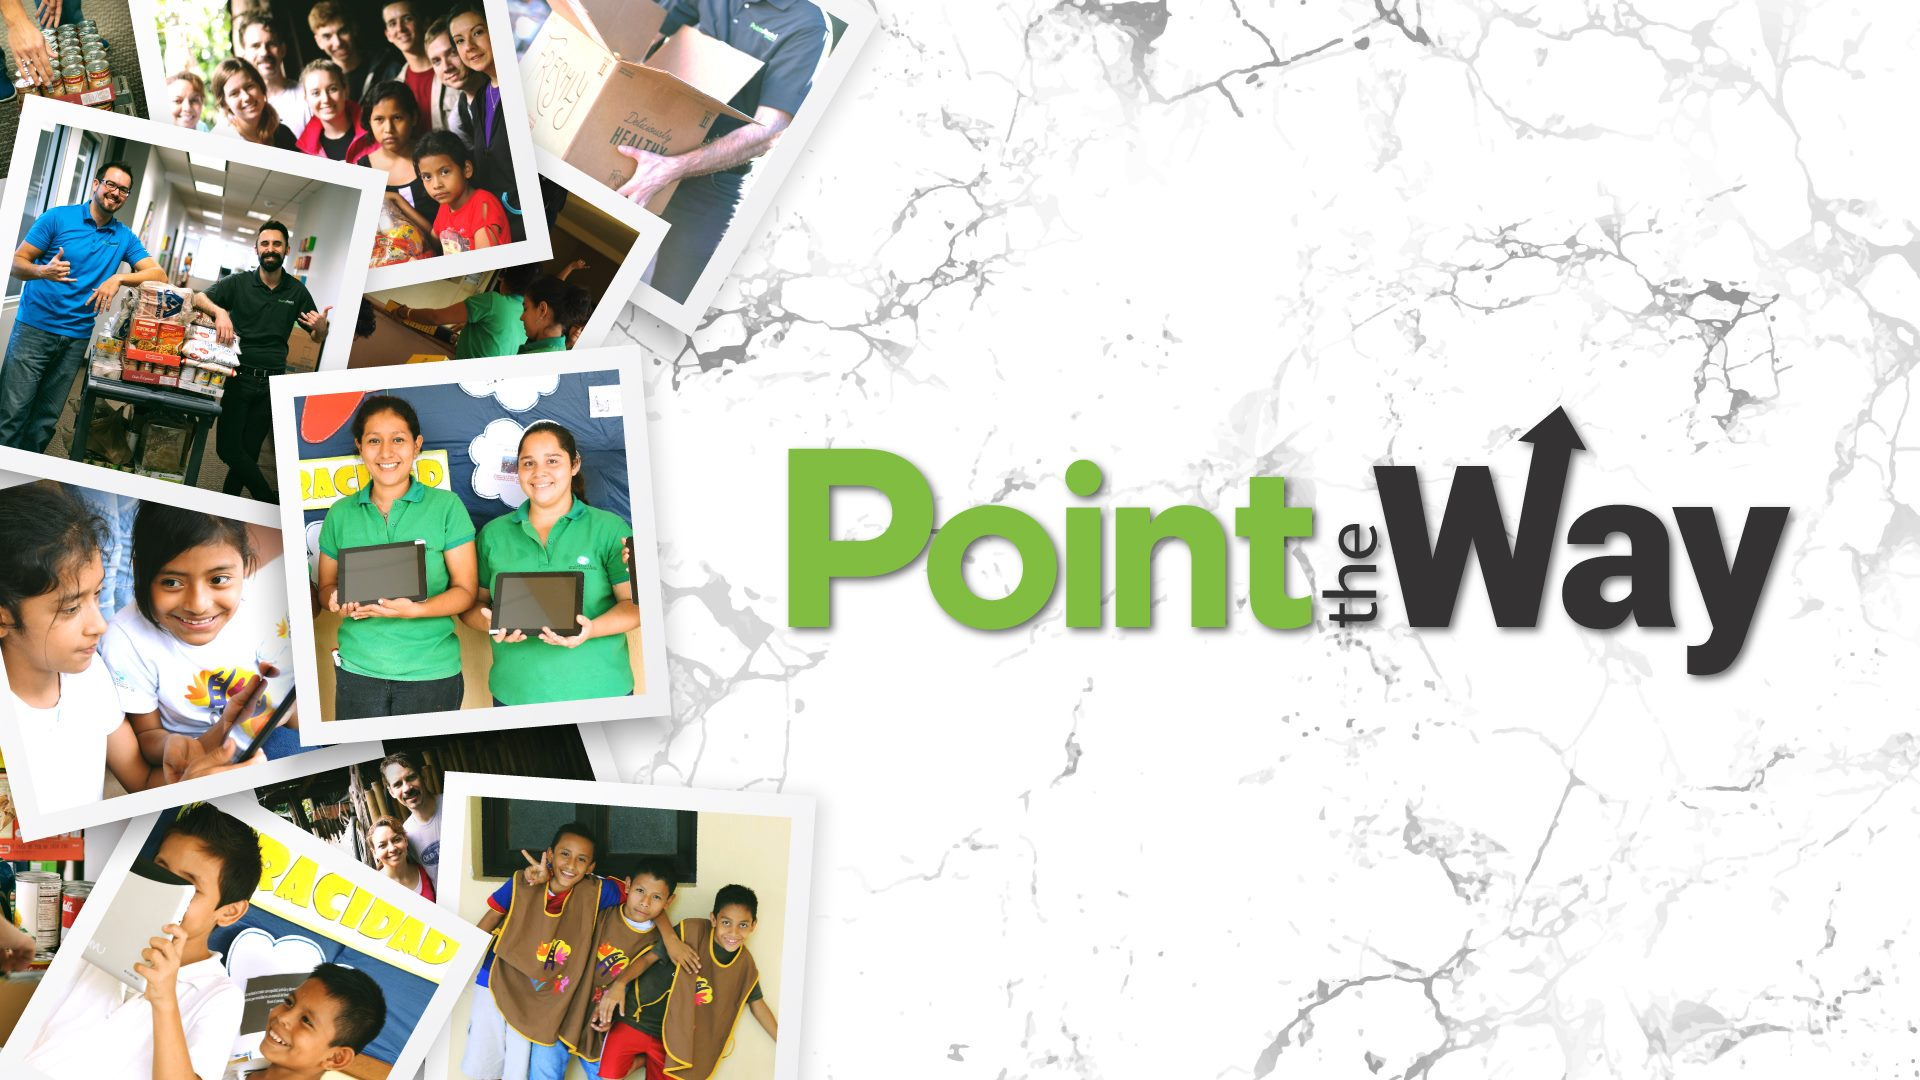 Point the Way nonprofit images and logo